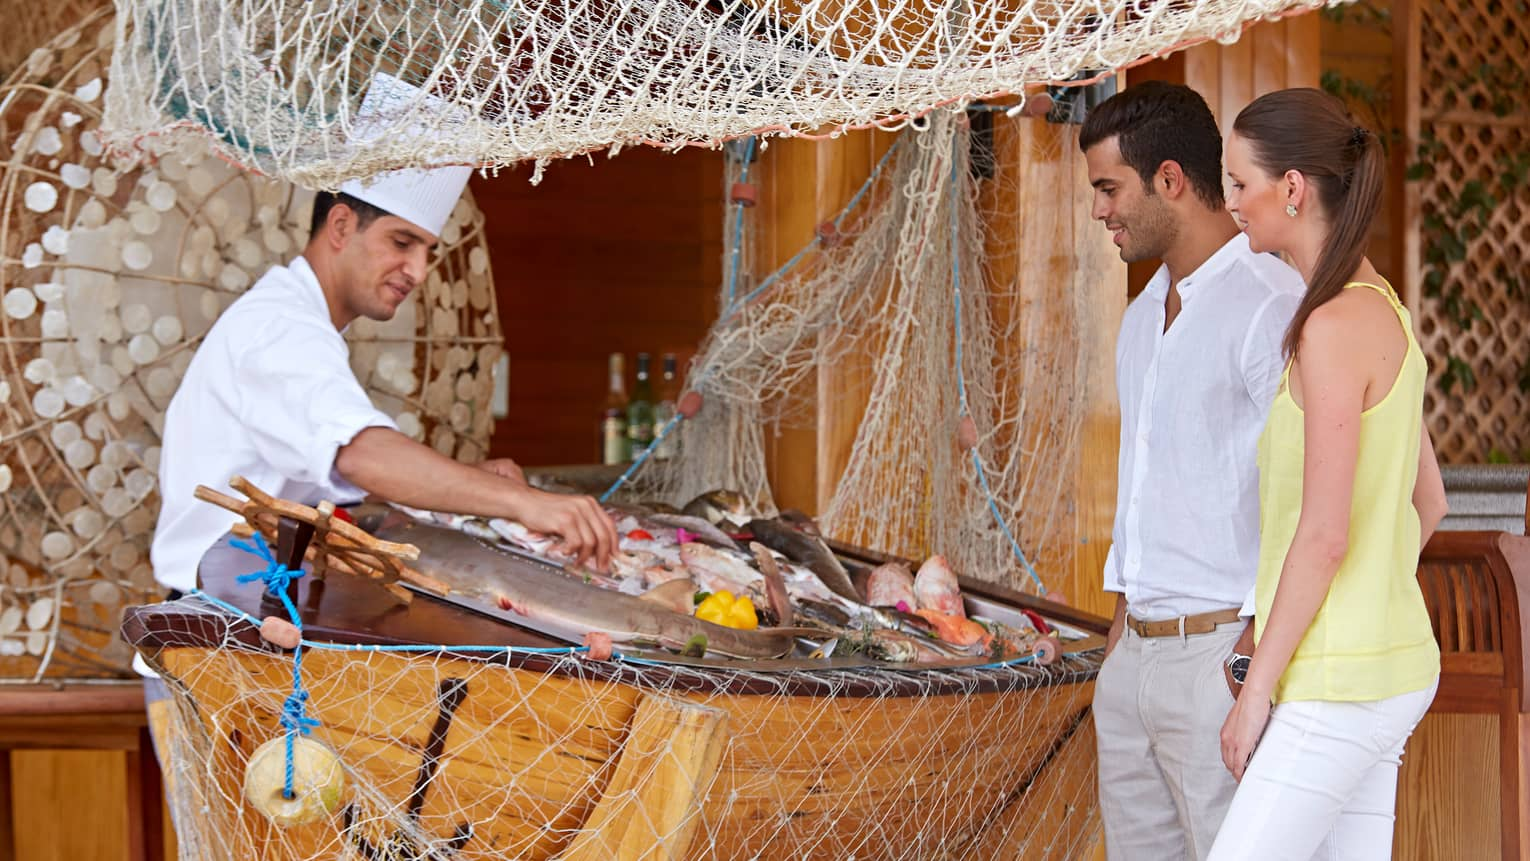 Reef Grill chef in hat displays fresh seafood on ice for couple